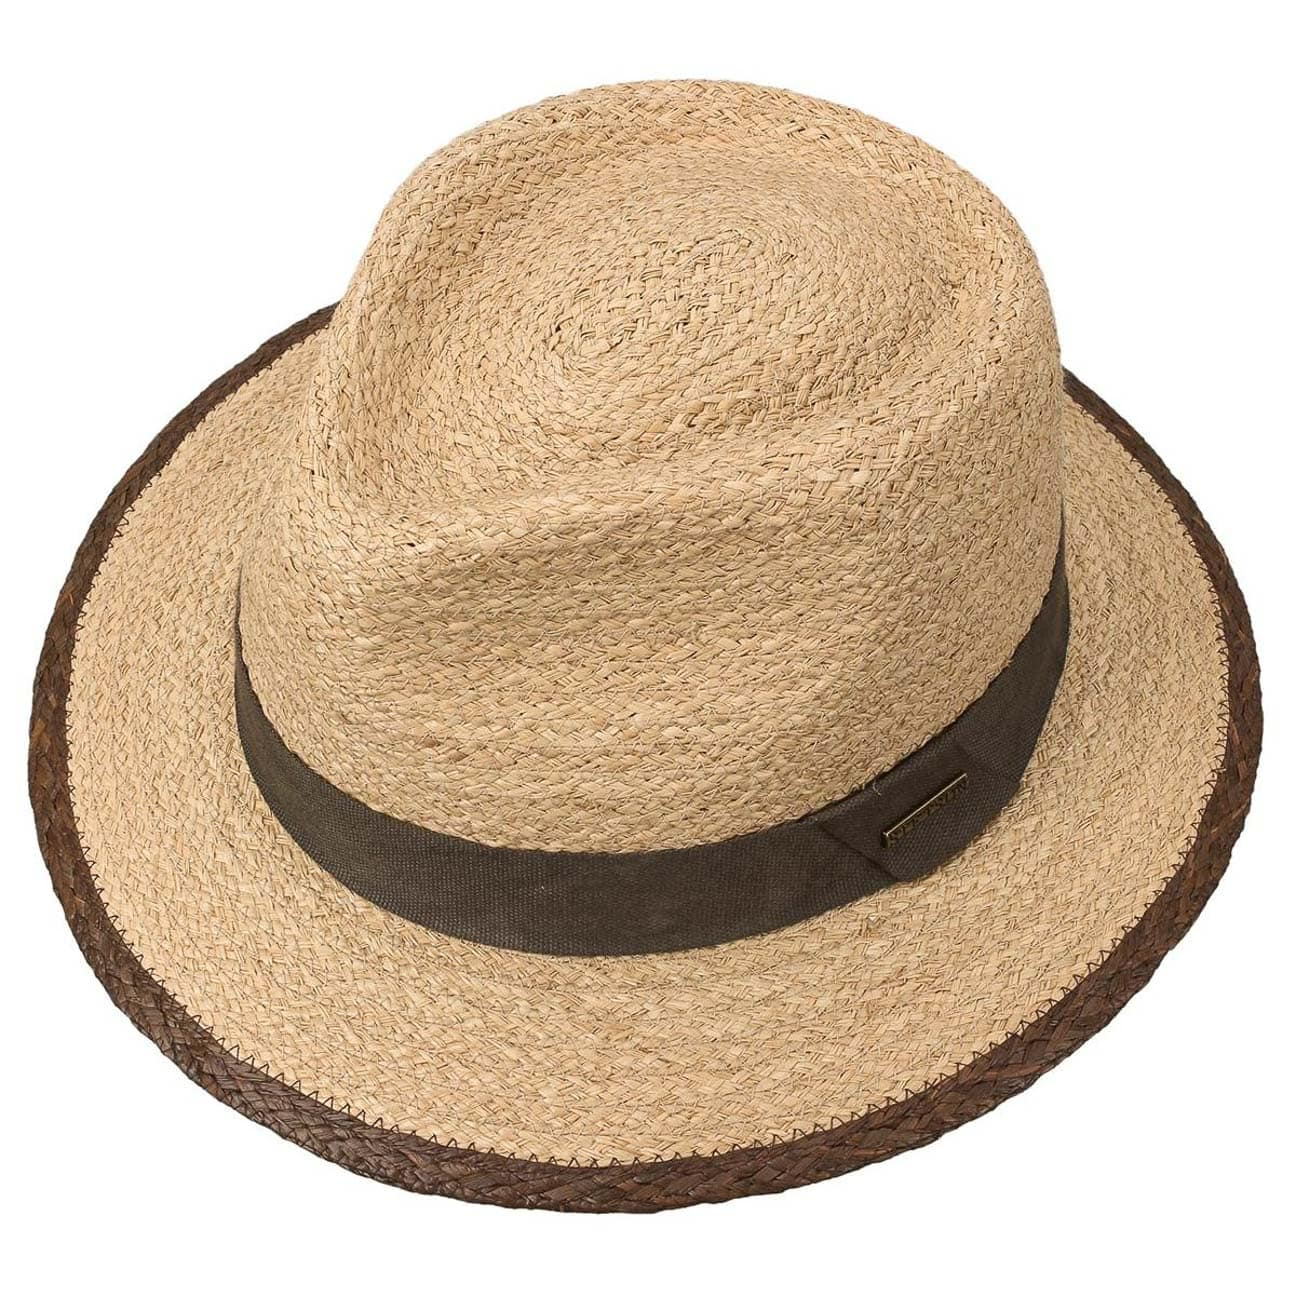 ee08c721c7138 Merriam Raffia Traveller Hat by Stetson - nature 2 ...